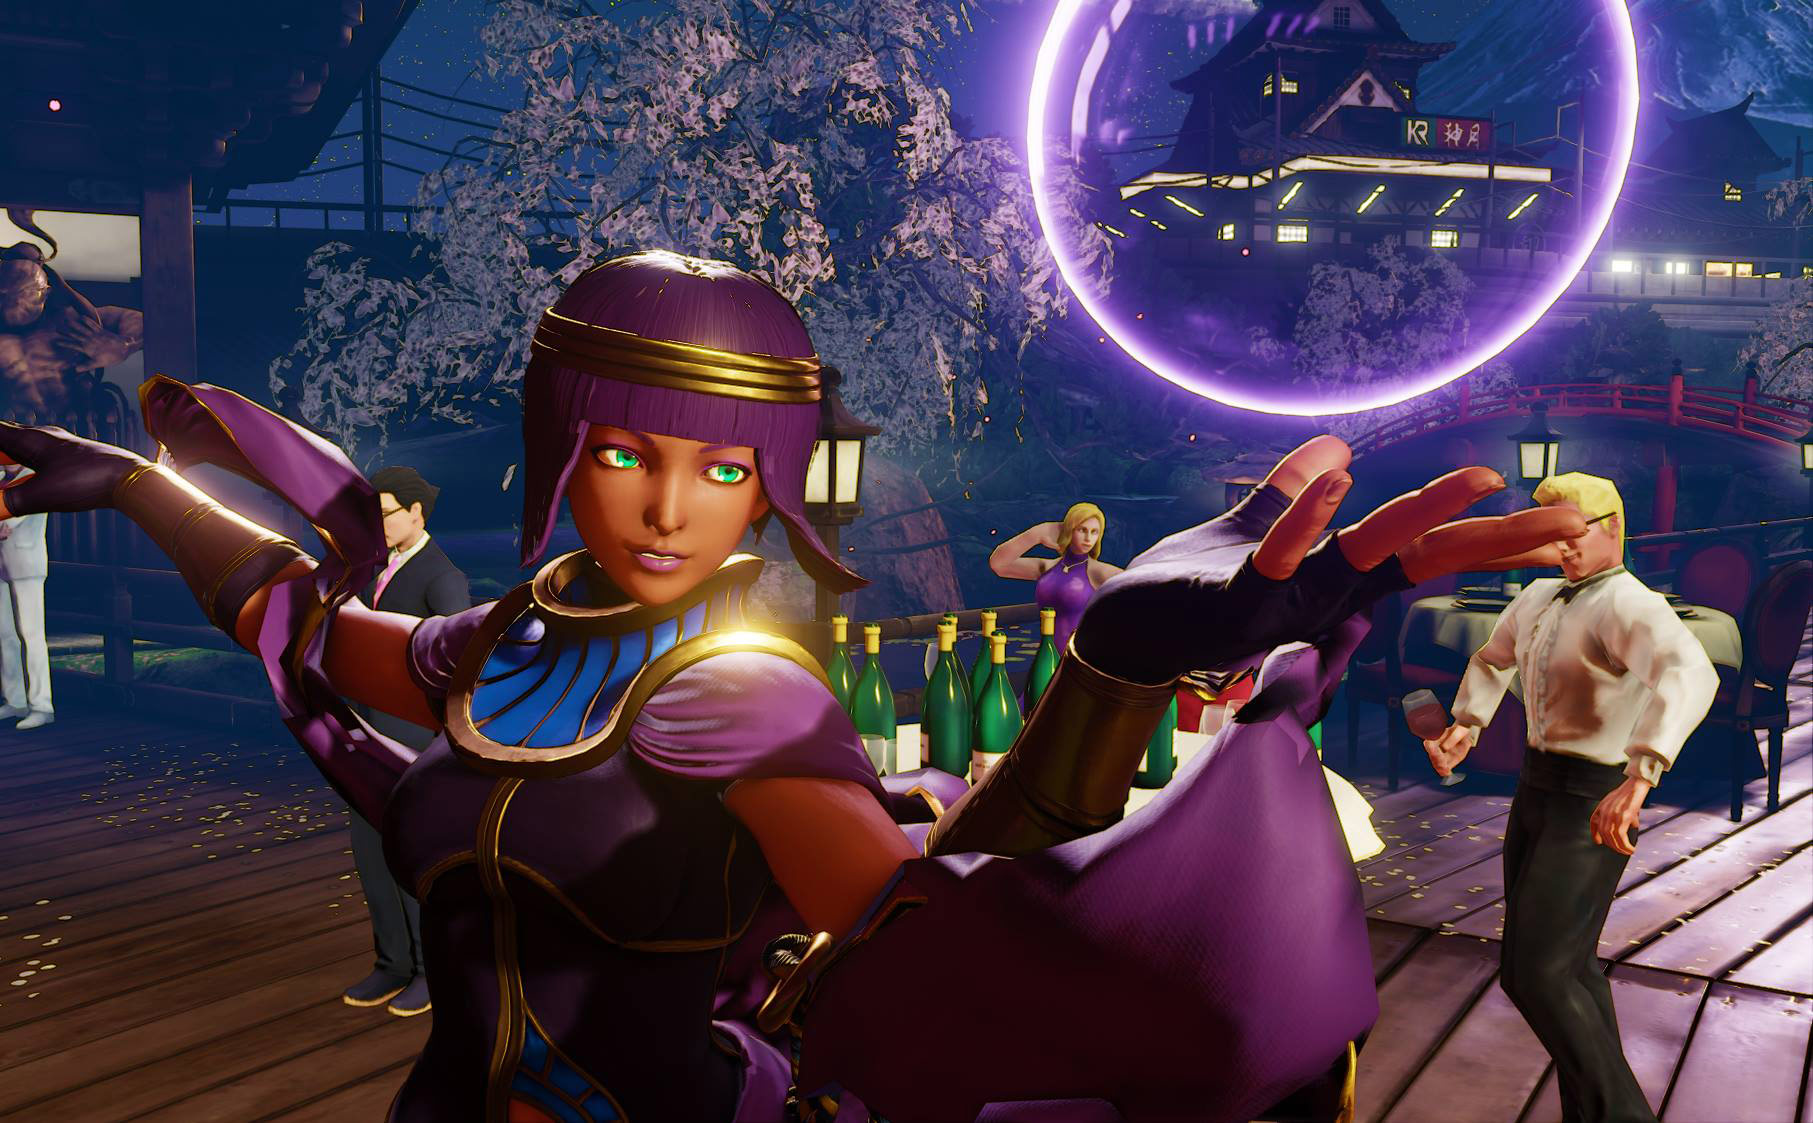 Menat in Street Fighter 5 11 out of 11 image gallery